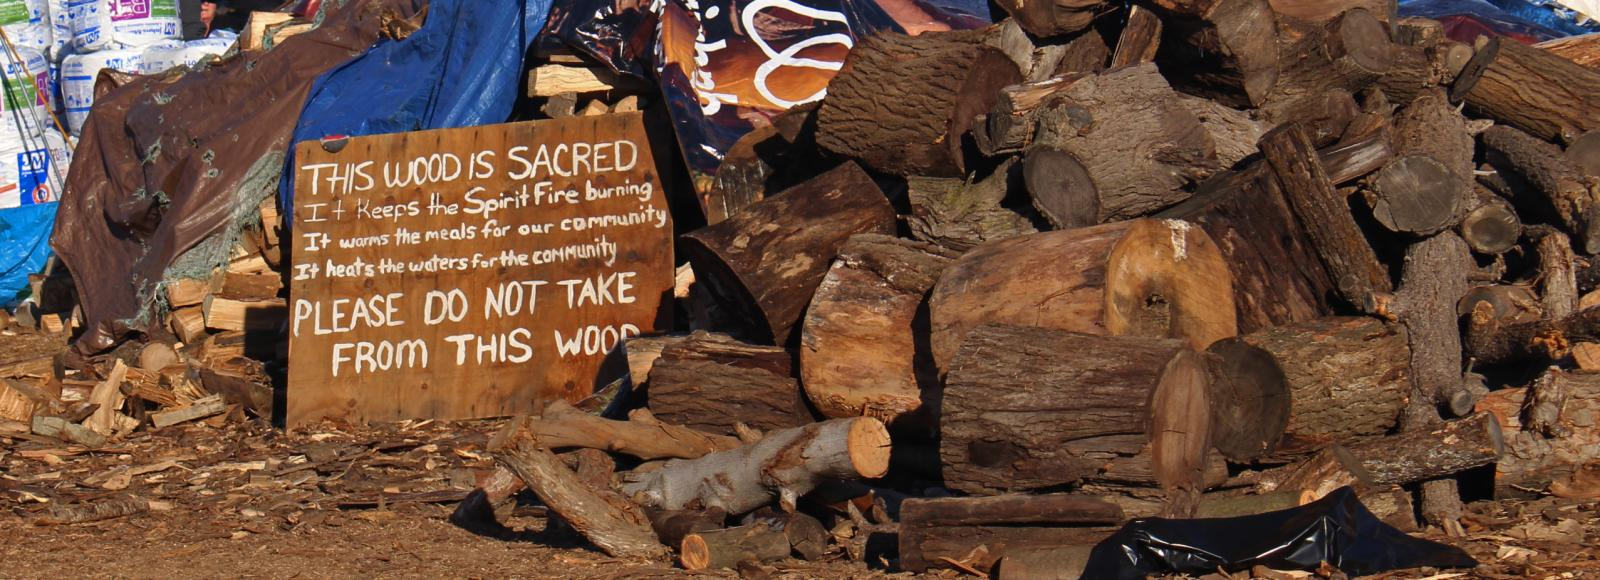 large firewood pile with sign stating